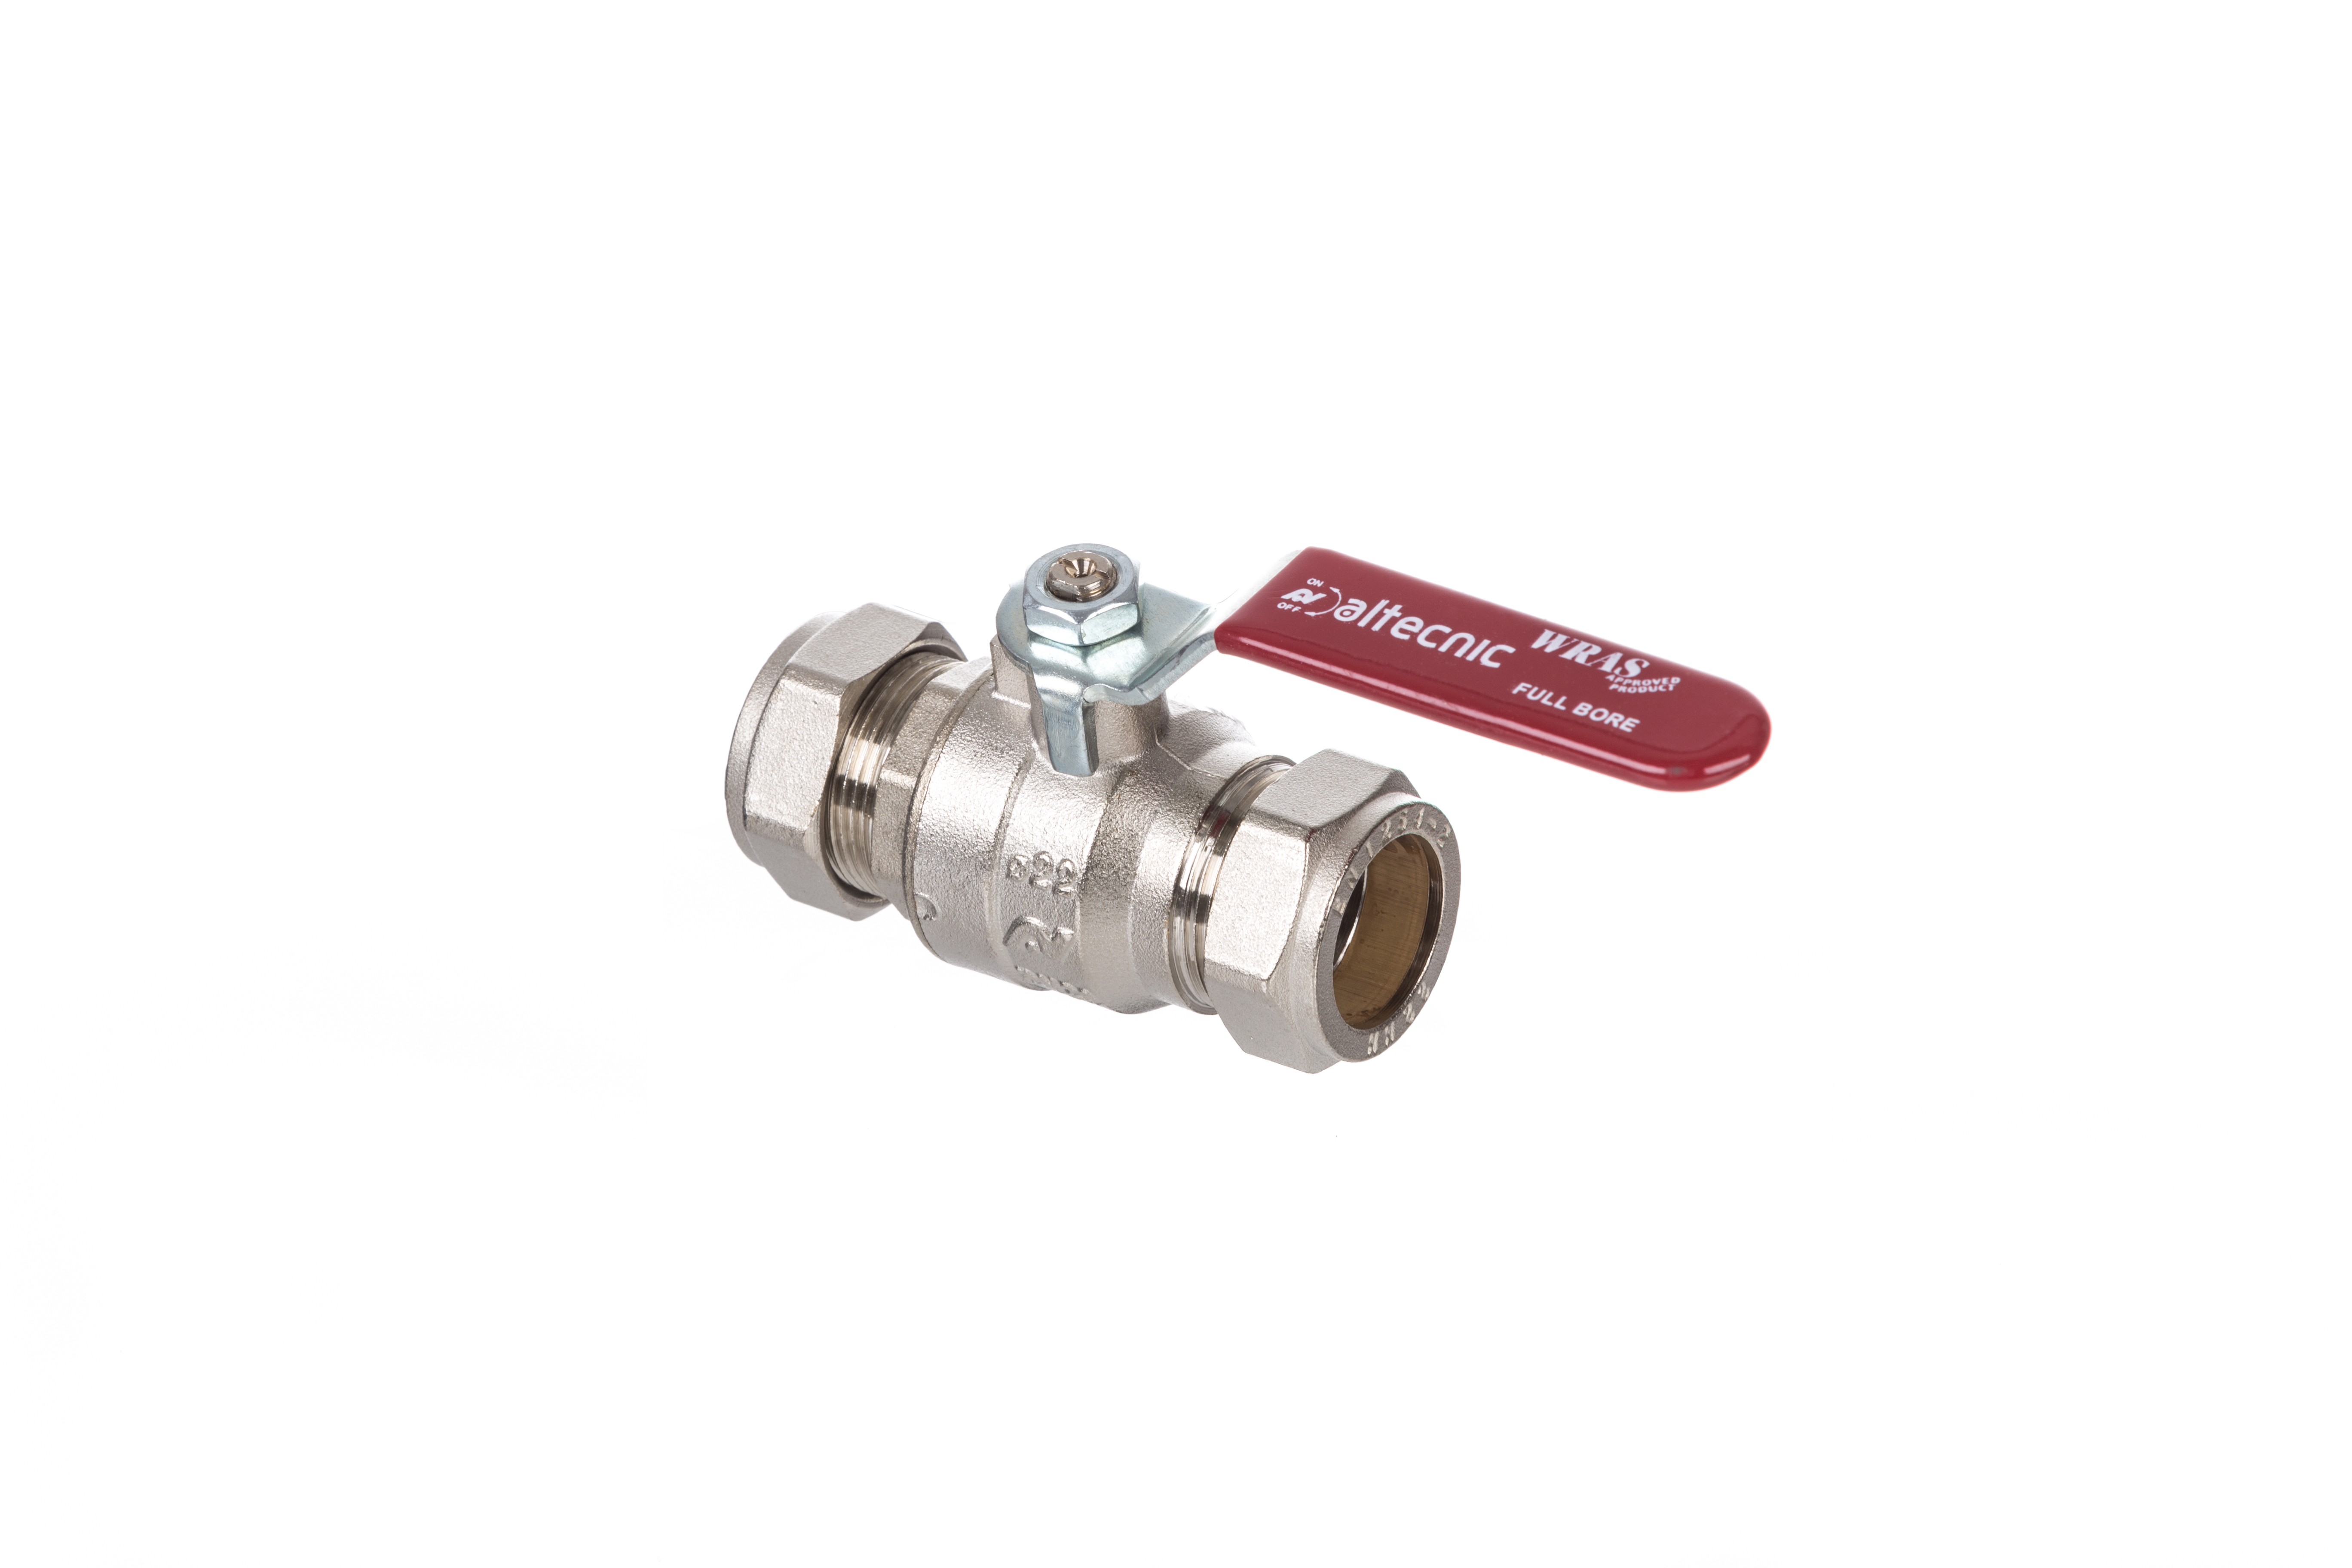 Series 171 Lever Operated WRAS approved Ball Valve with Compression Connections